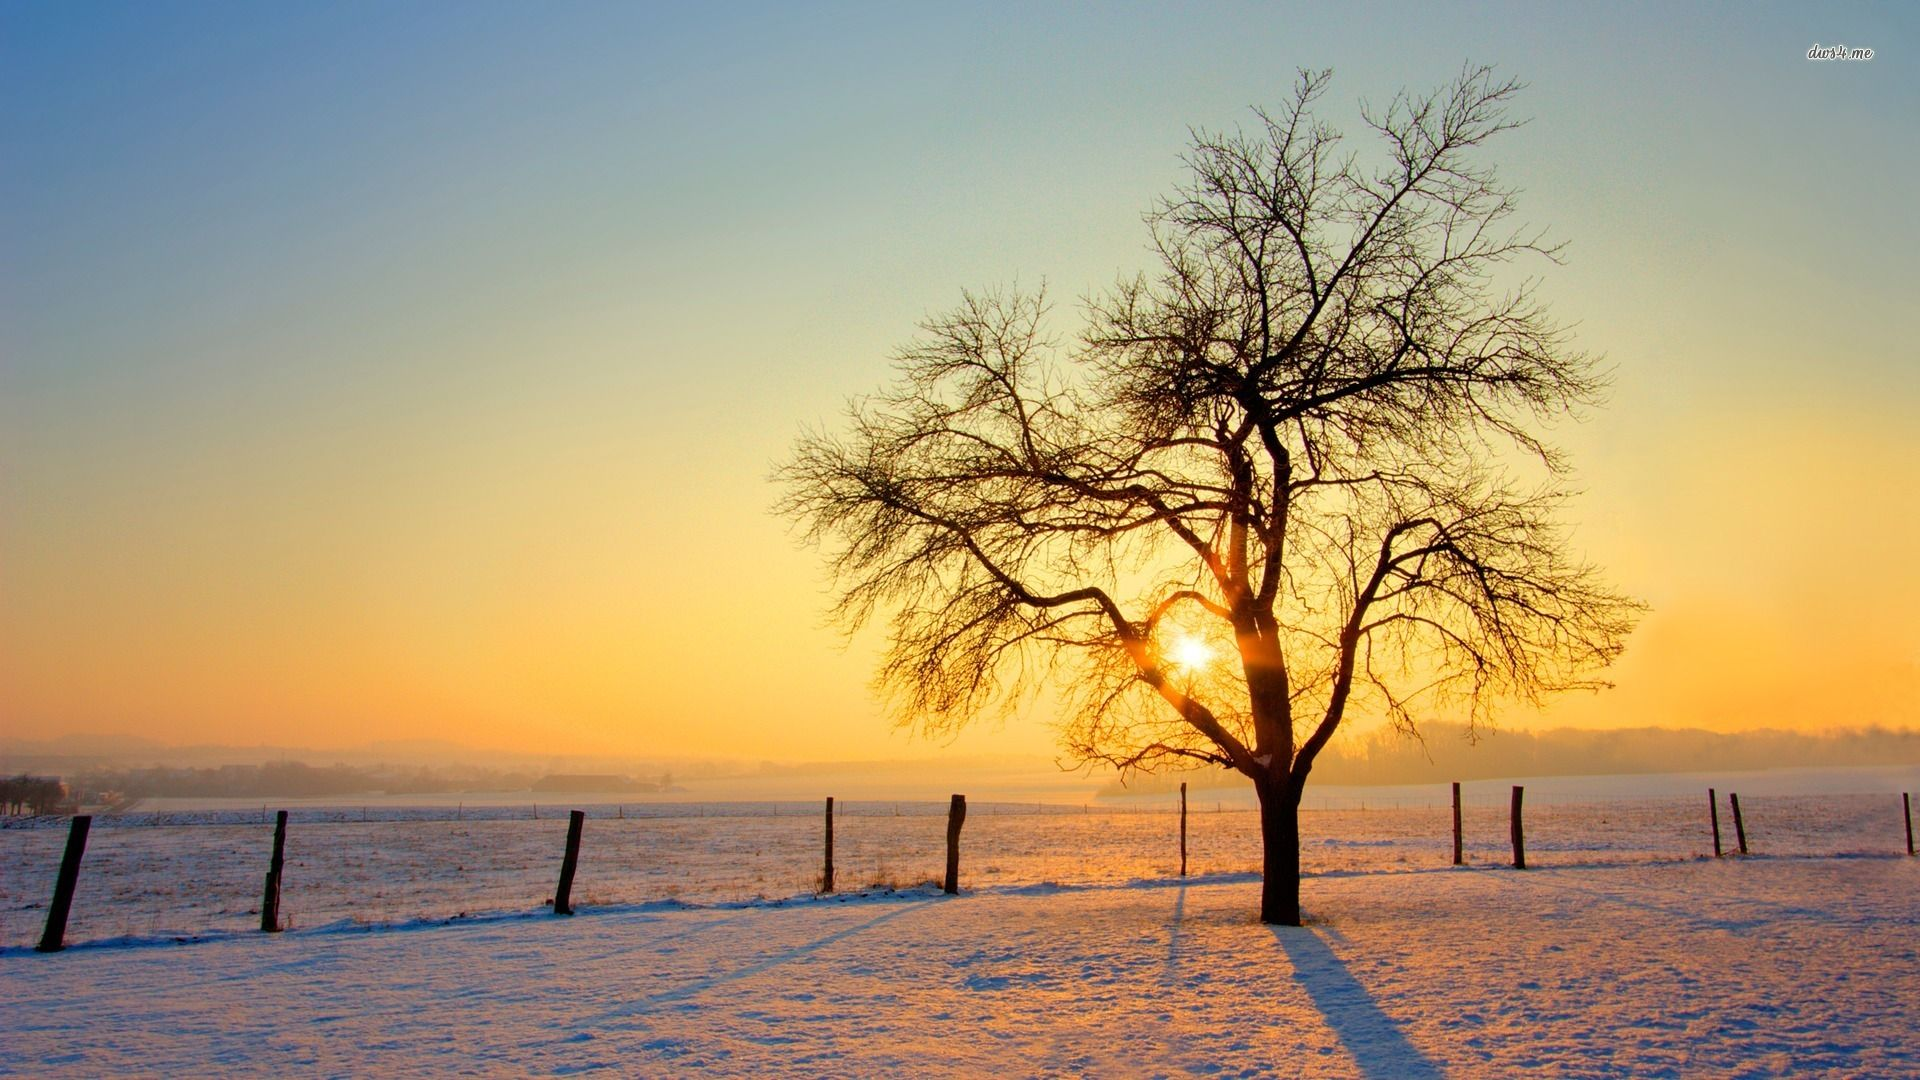 2545-winter-landscape-1920x1080-nature-wallpaper.jpg